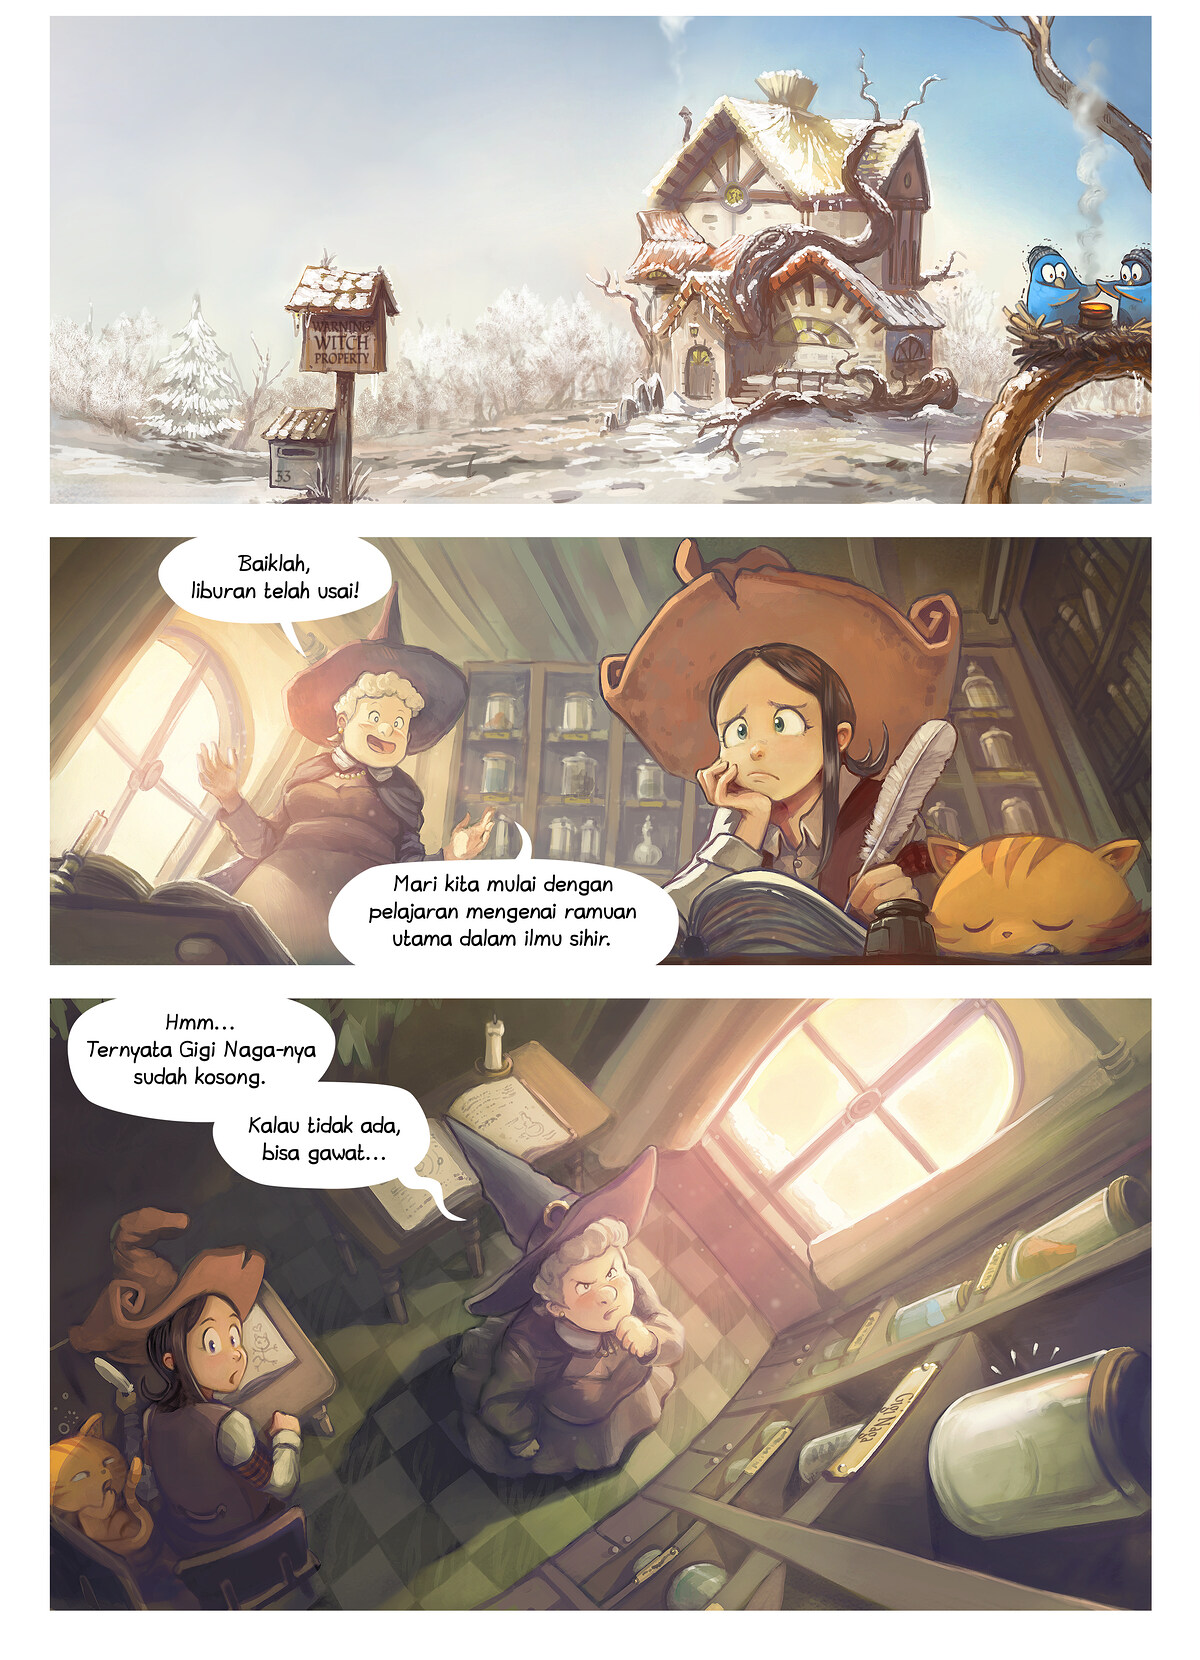 A webcomic page of Pepper&Carrot, episode 14 [id], halaman 1